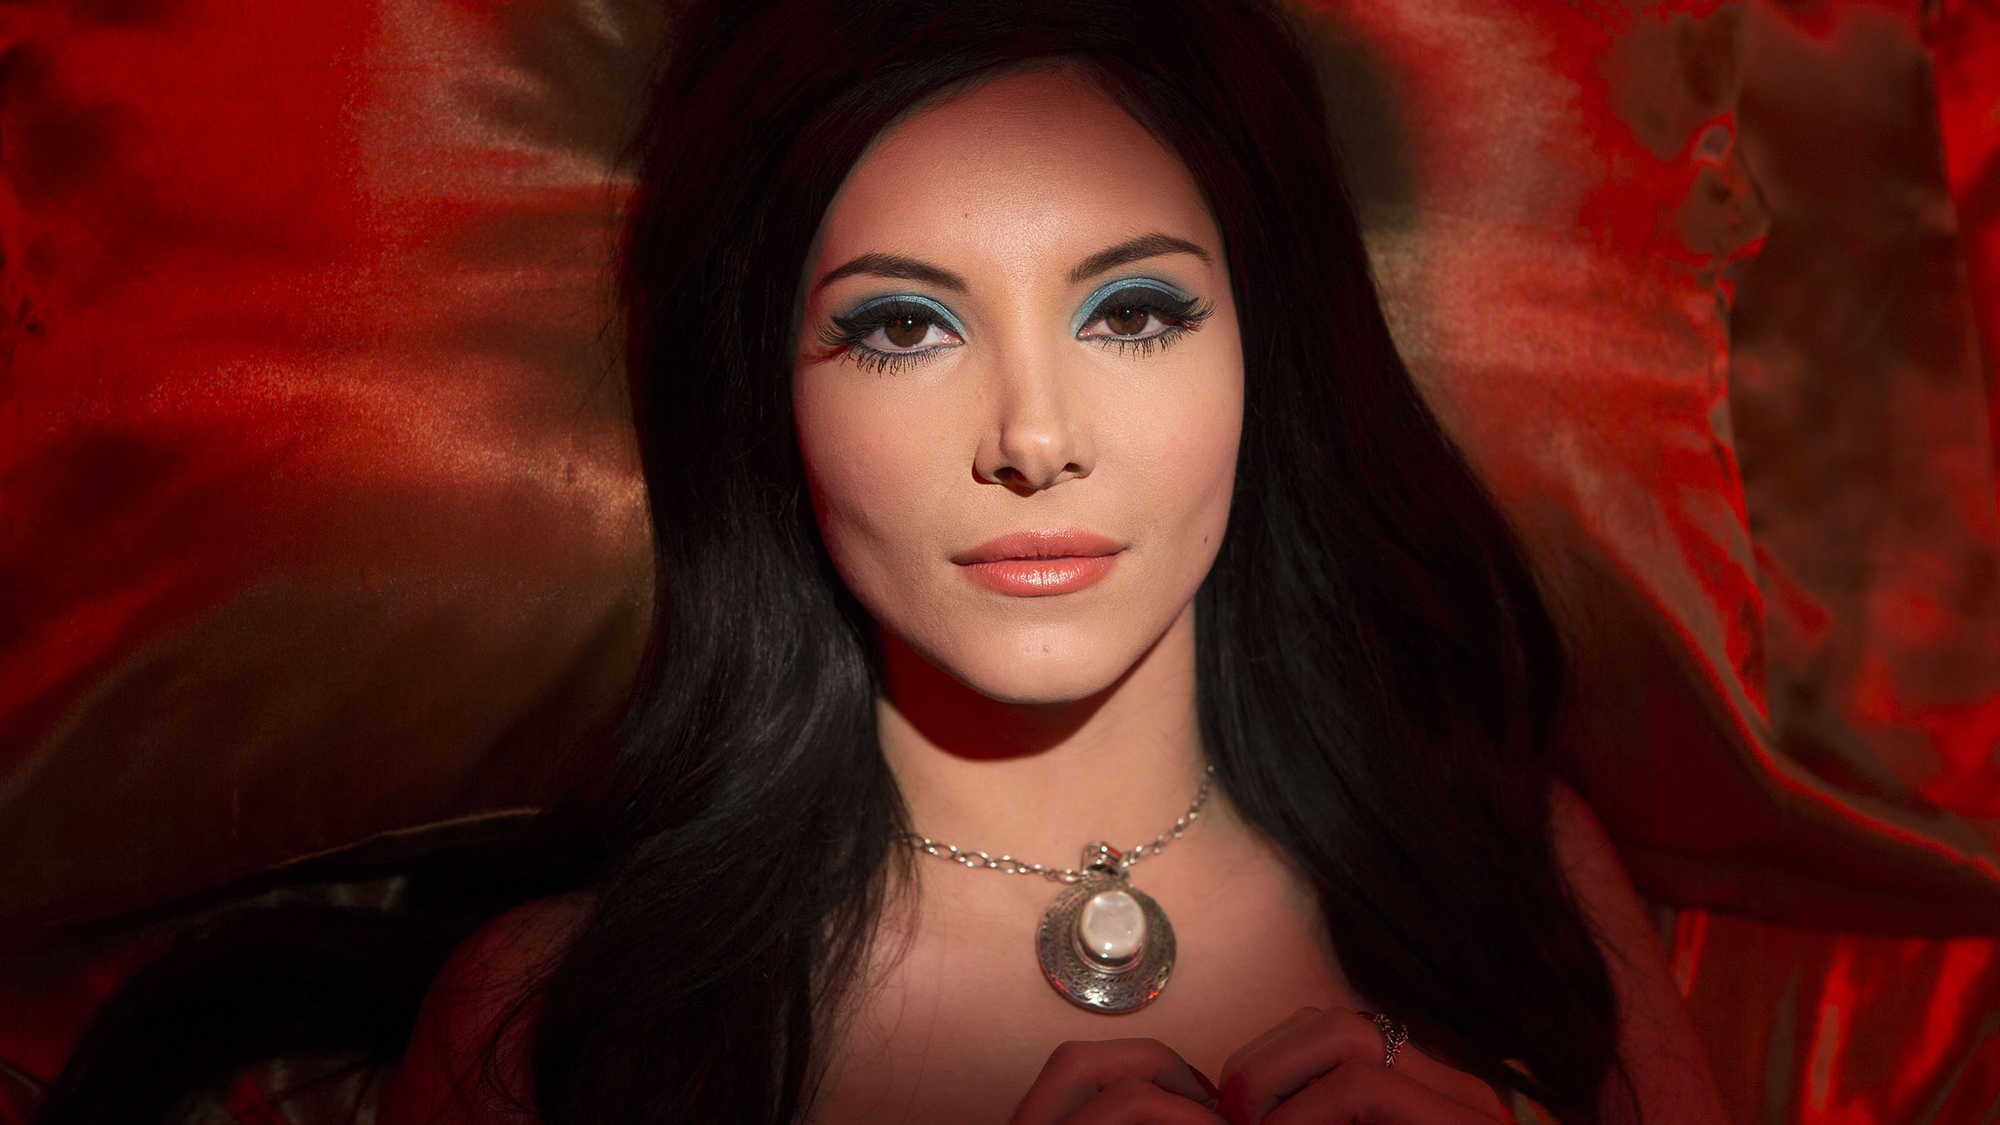 The Love Witch (image 2)